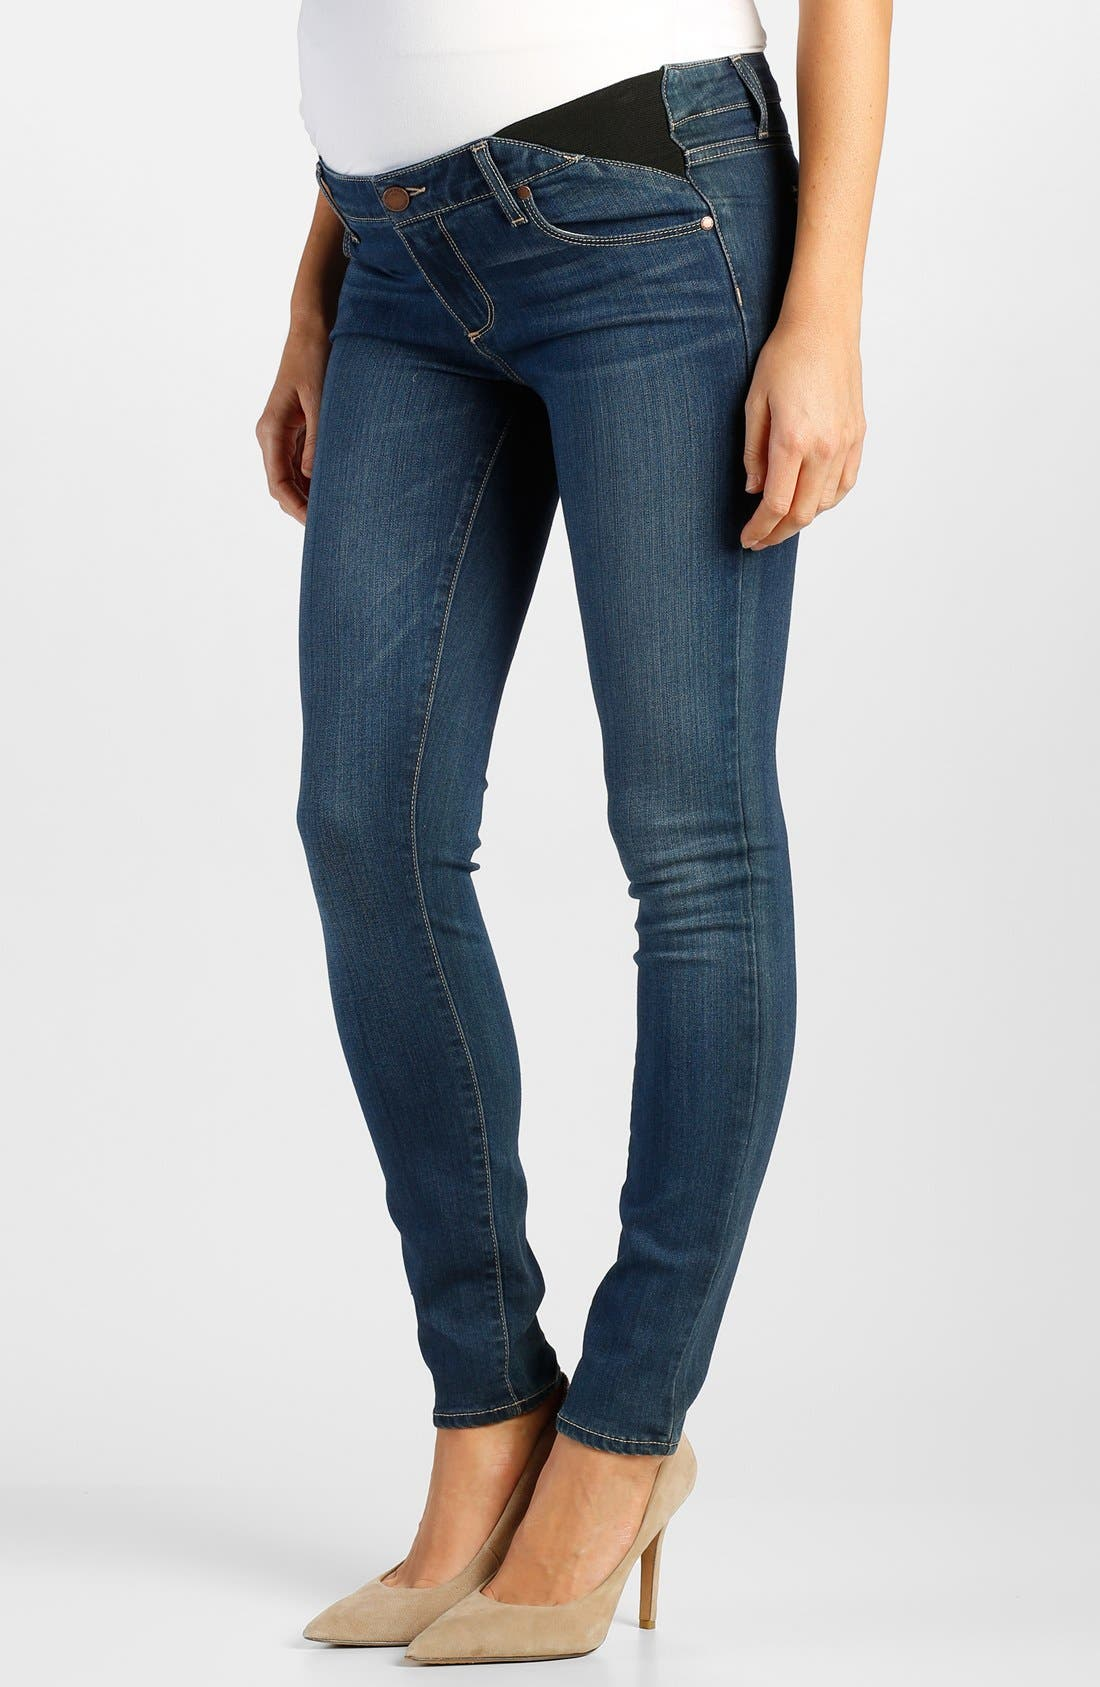 Alternate Image 1 Selected - Paige Denim 'Transcend - Verdugo' Maternity Ankle Jeans with Side Gussets (Lex)